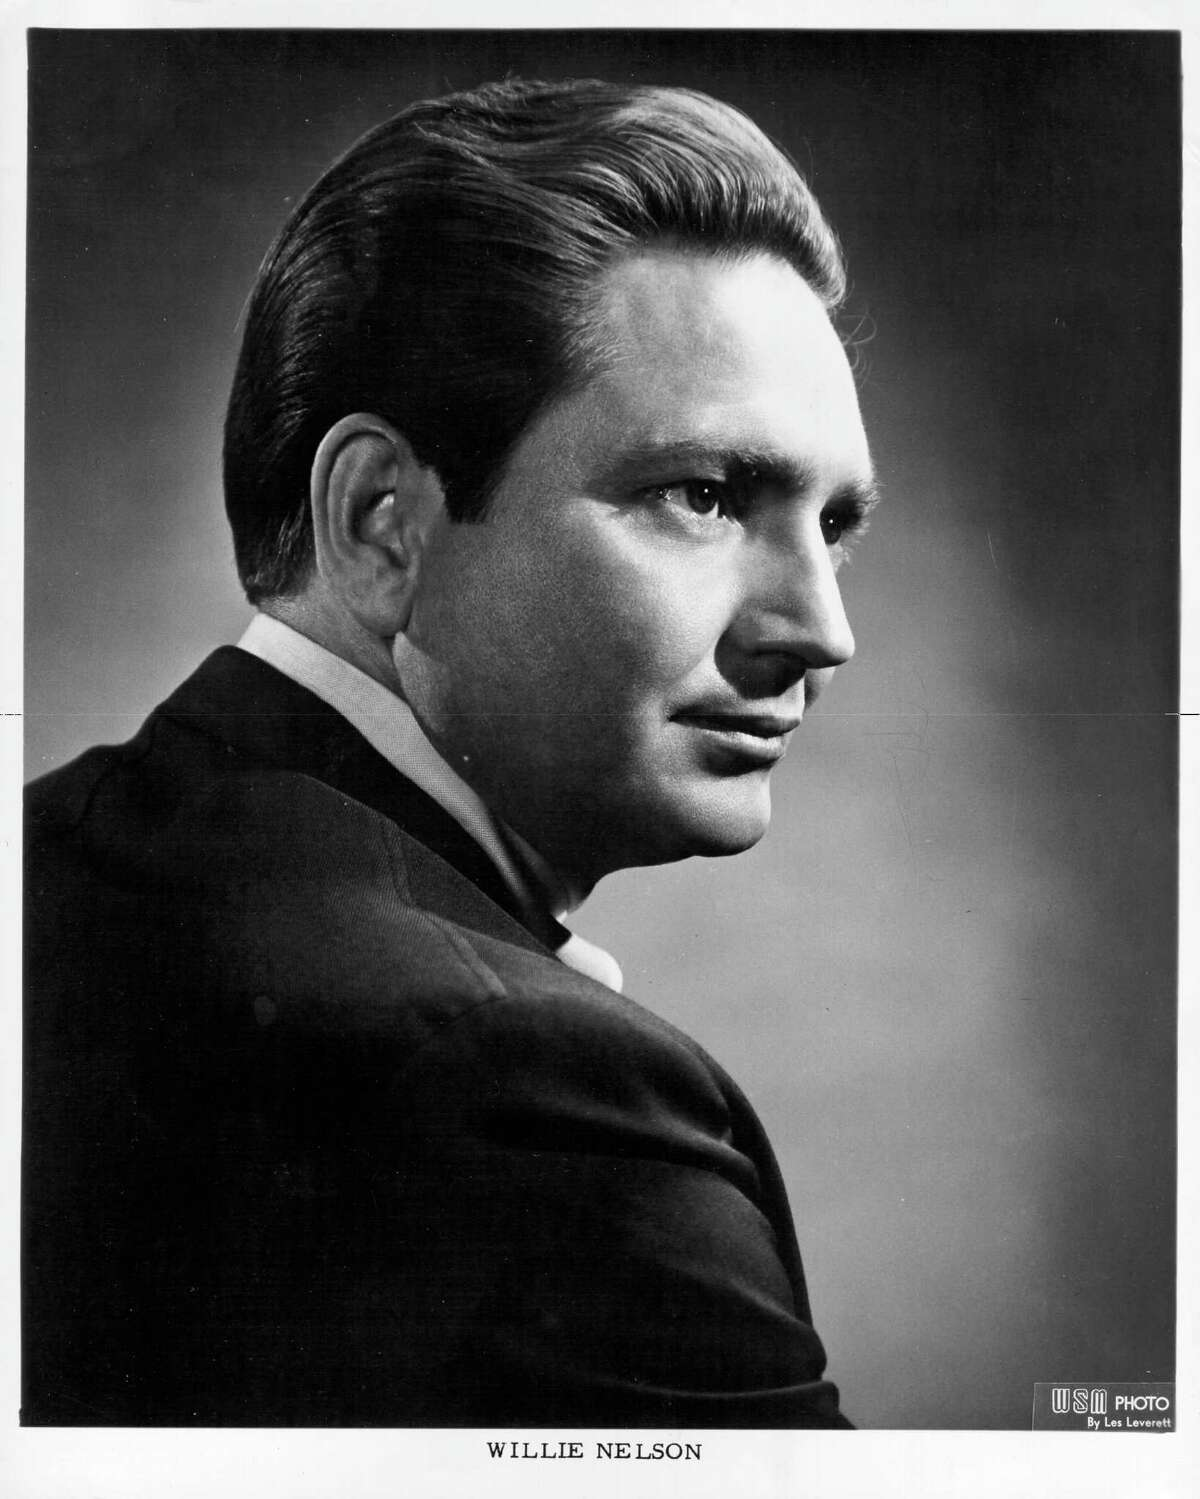 Beardless Willie: An early publicity still for Willie Nelson circa 1965. Nelson wrote some of his best songs in the 1960s, but his albums -- often overproduced with strings -- didn't sell well.